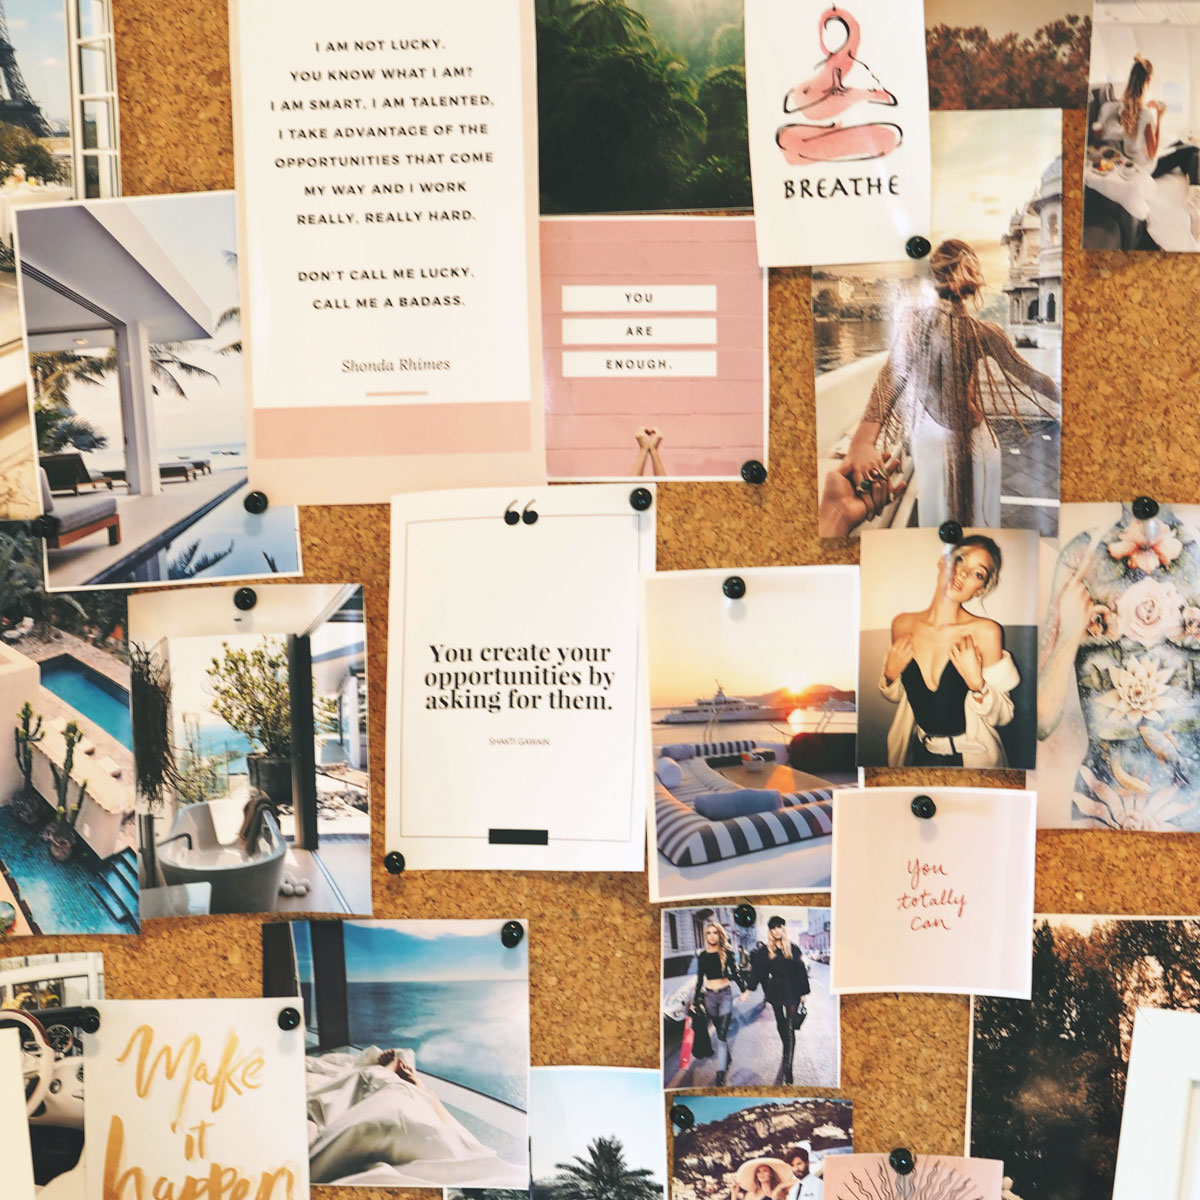 Vision Boarding and Creating Goals for a New Year